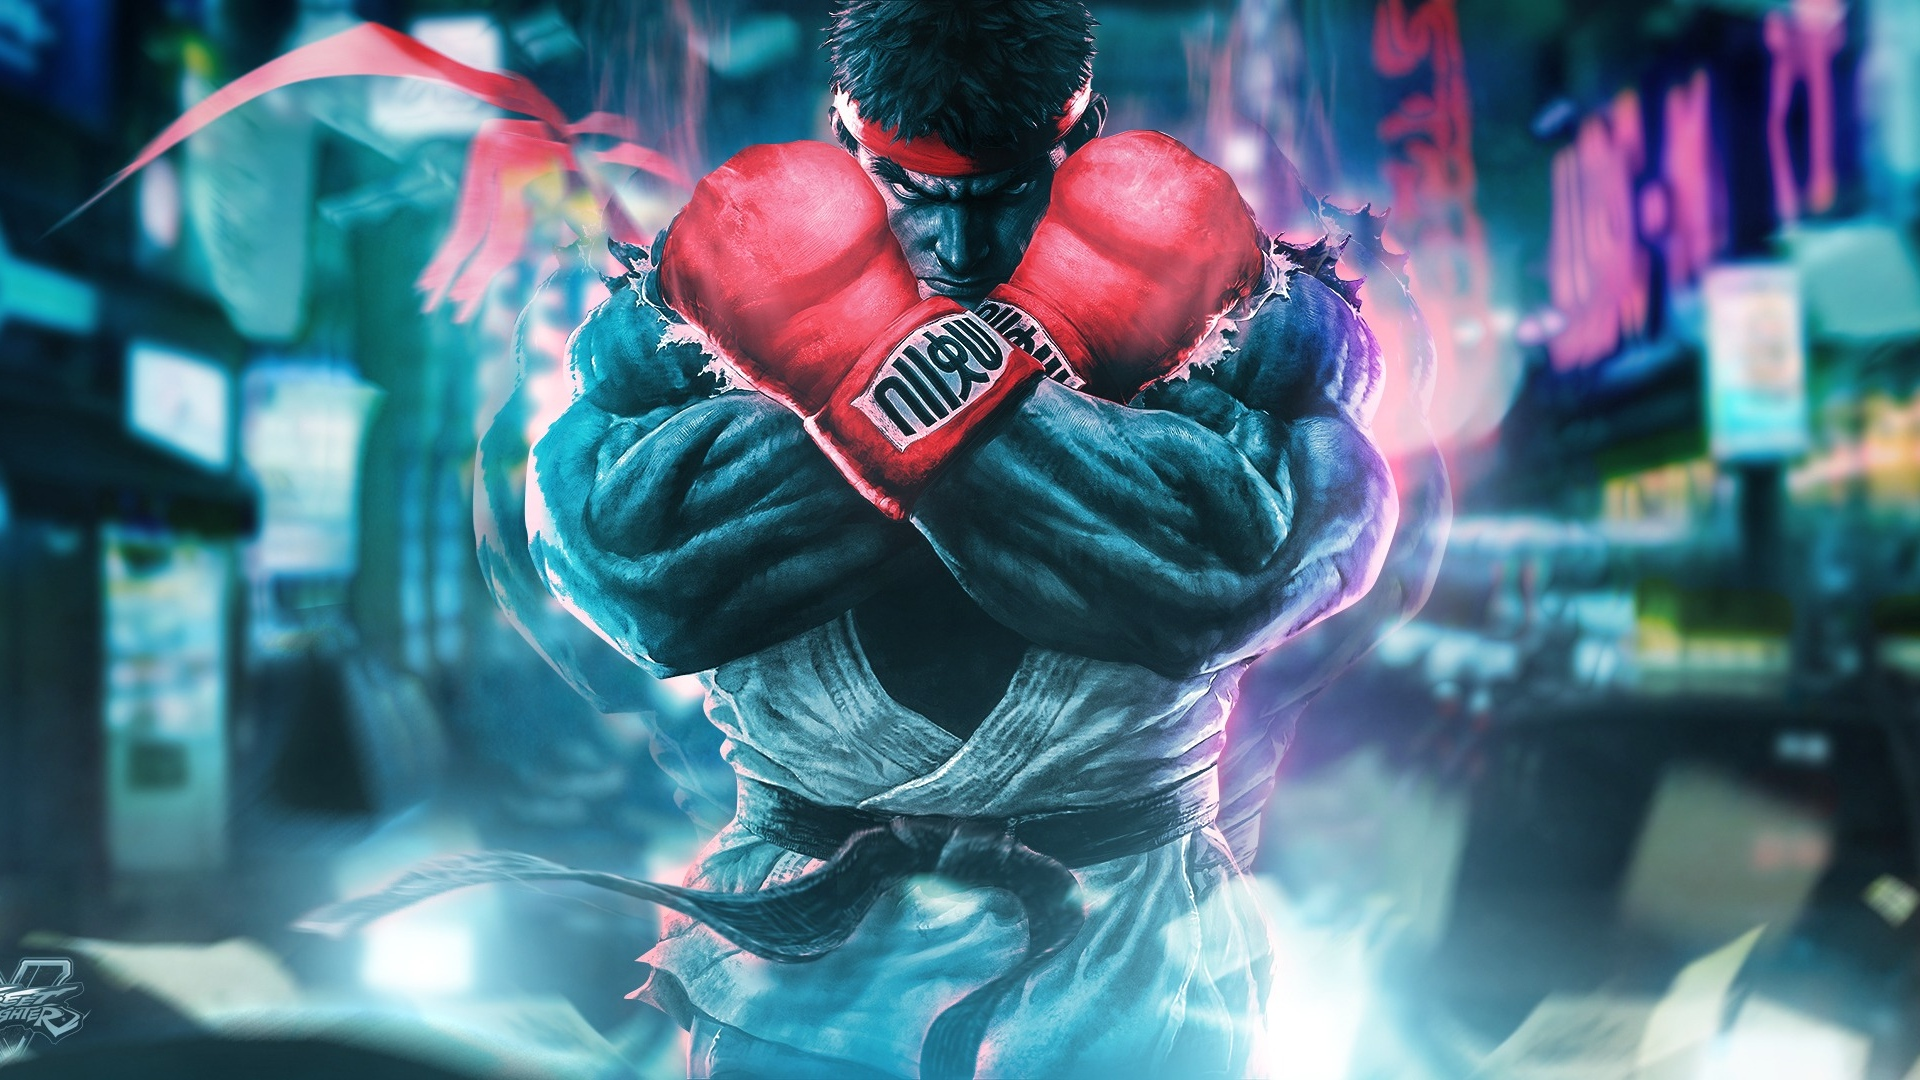 Free Download Download Wallpaper 1920x1080 Street Fighter 5 Capcom